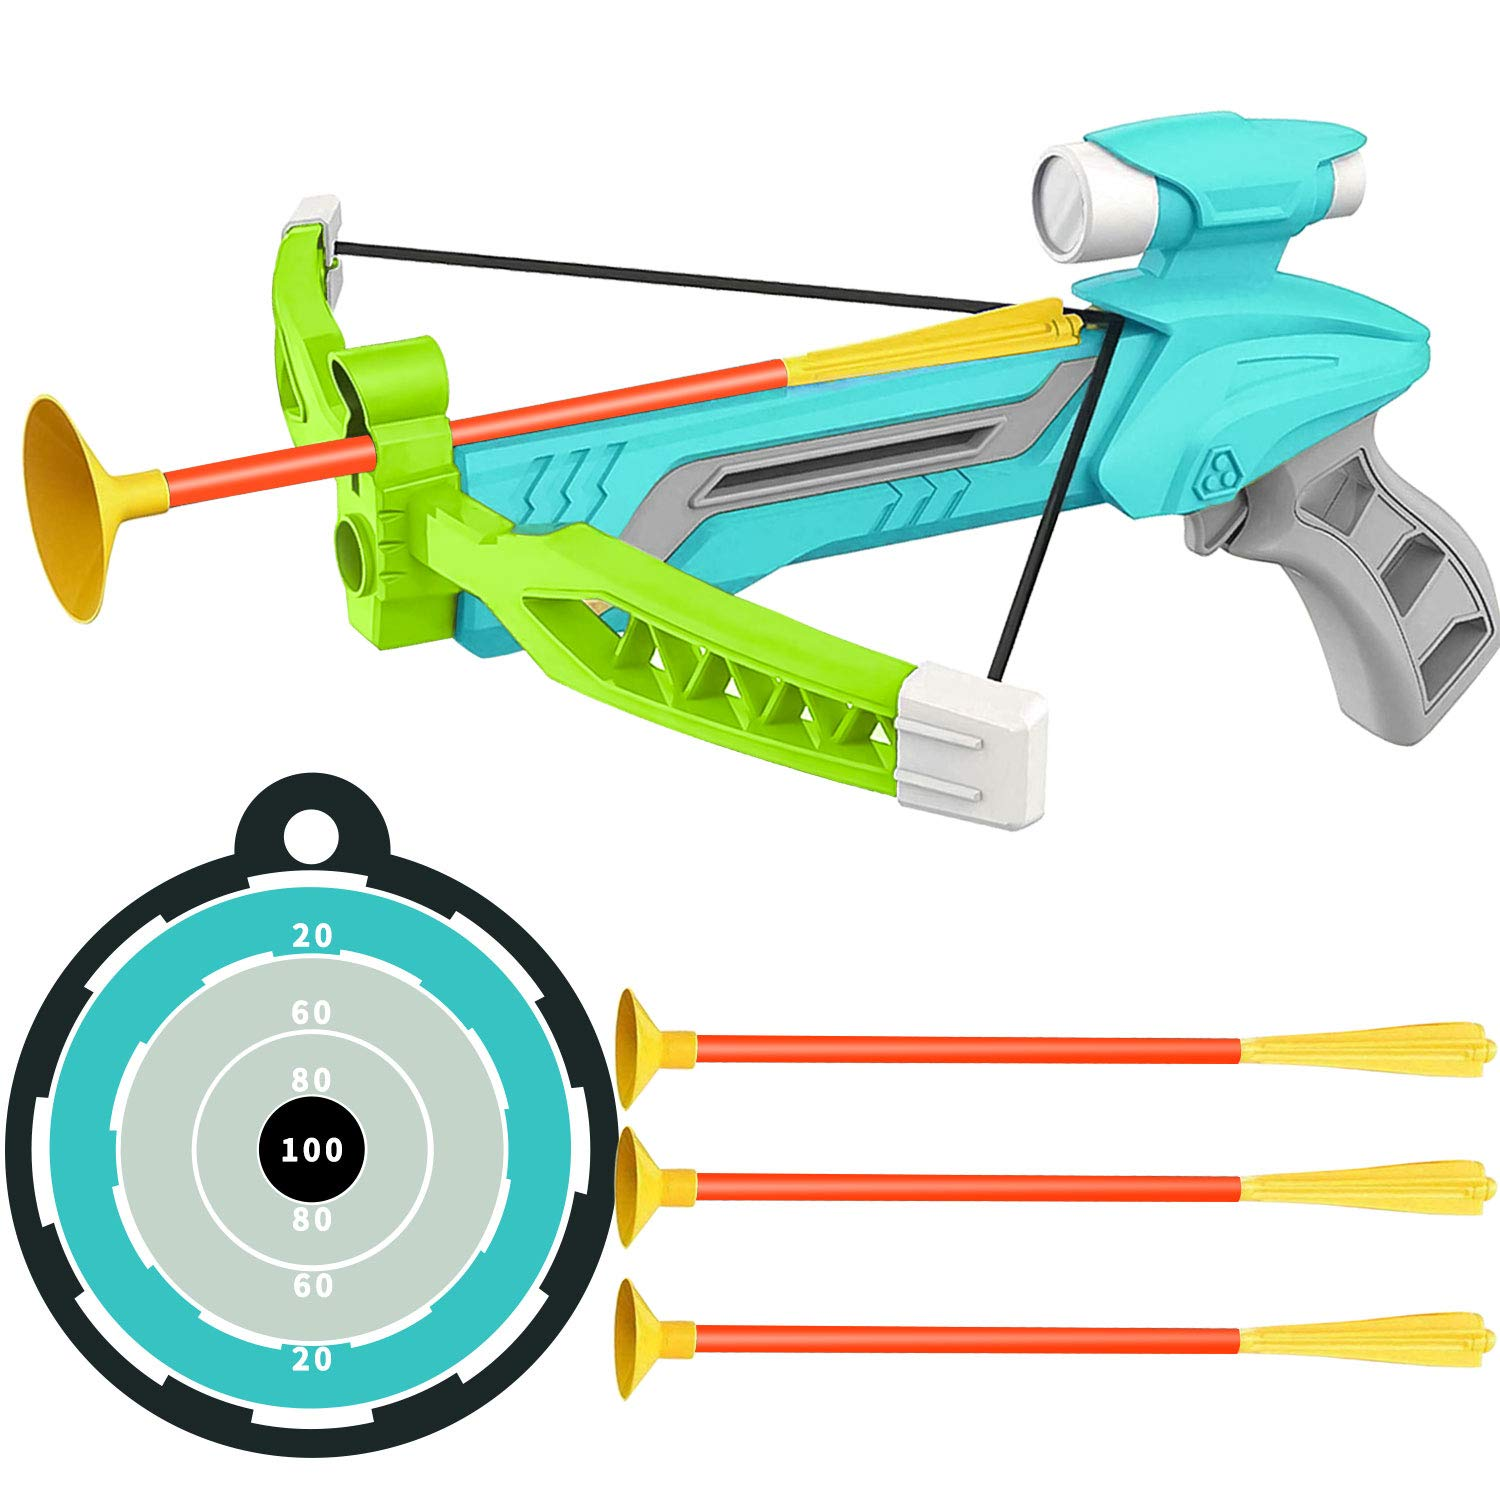 Newooh 6pcs Archery Suction Cup Arrow Children Archery Game Safety Rubber Arrows for Teens Shooting Training